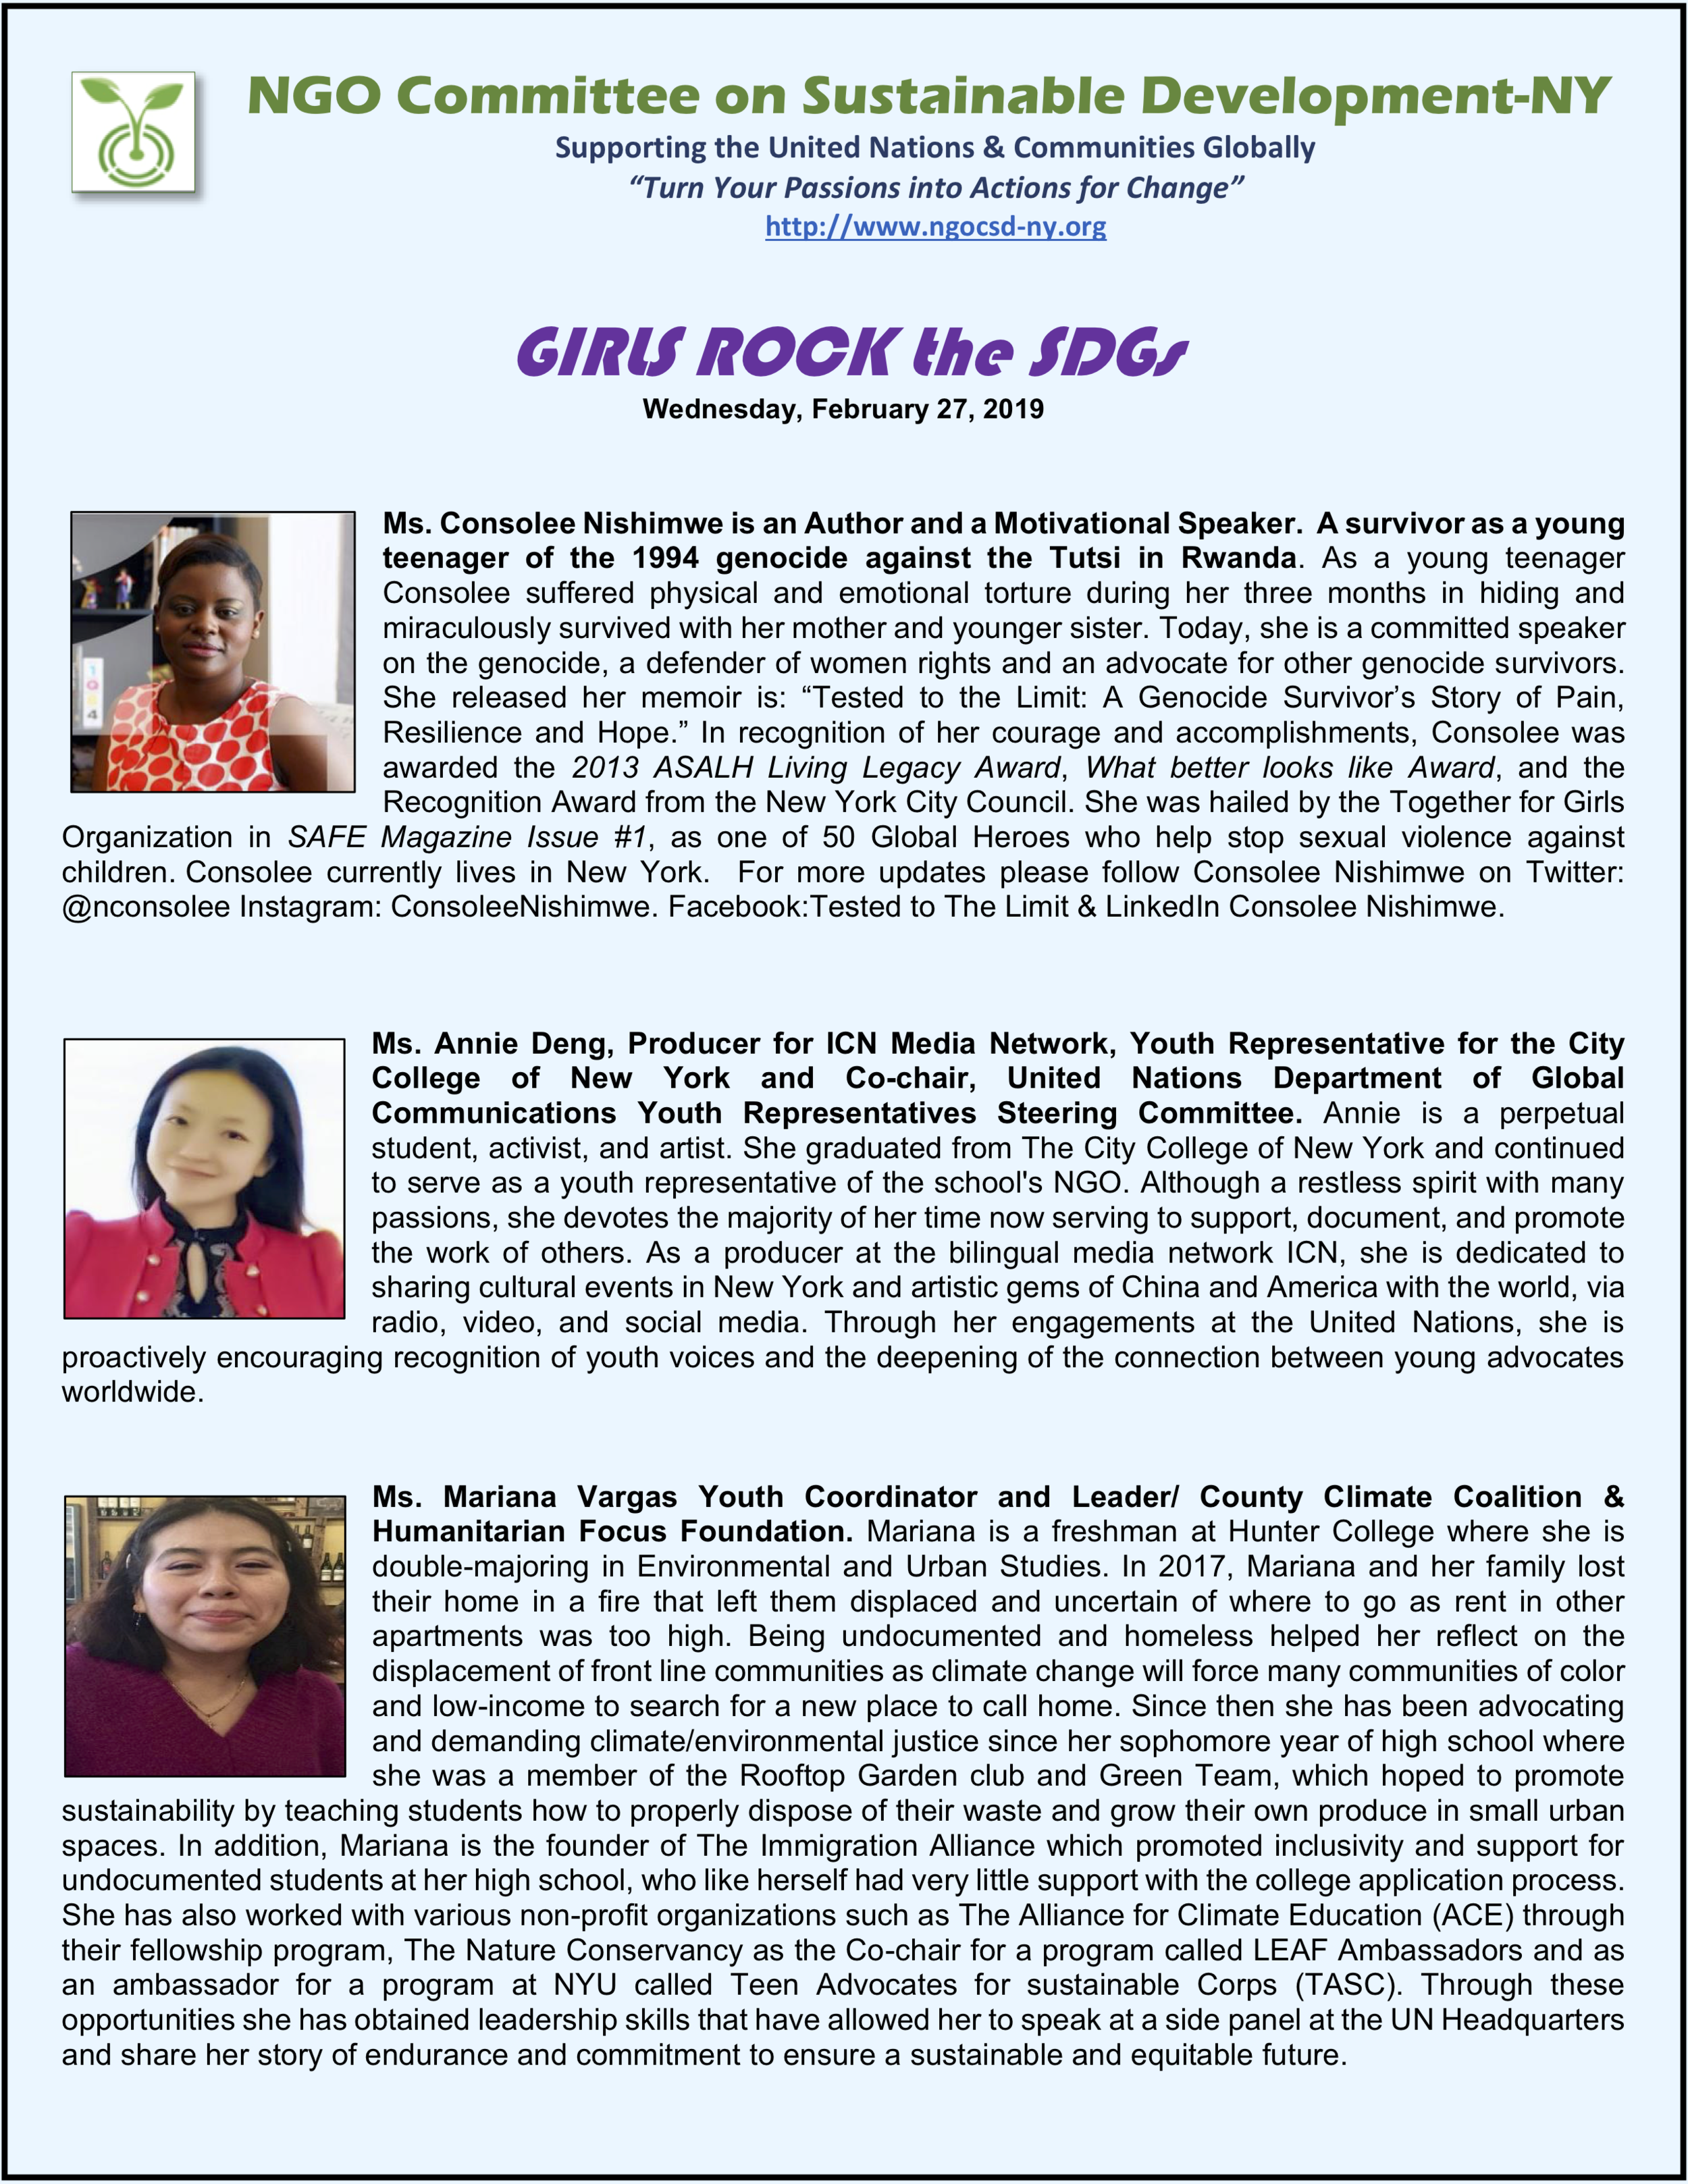 NGOCSD-NY 2-27-19 GIRLS ROCK the SDGs Photo-Bios A2.png